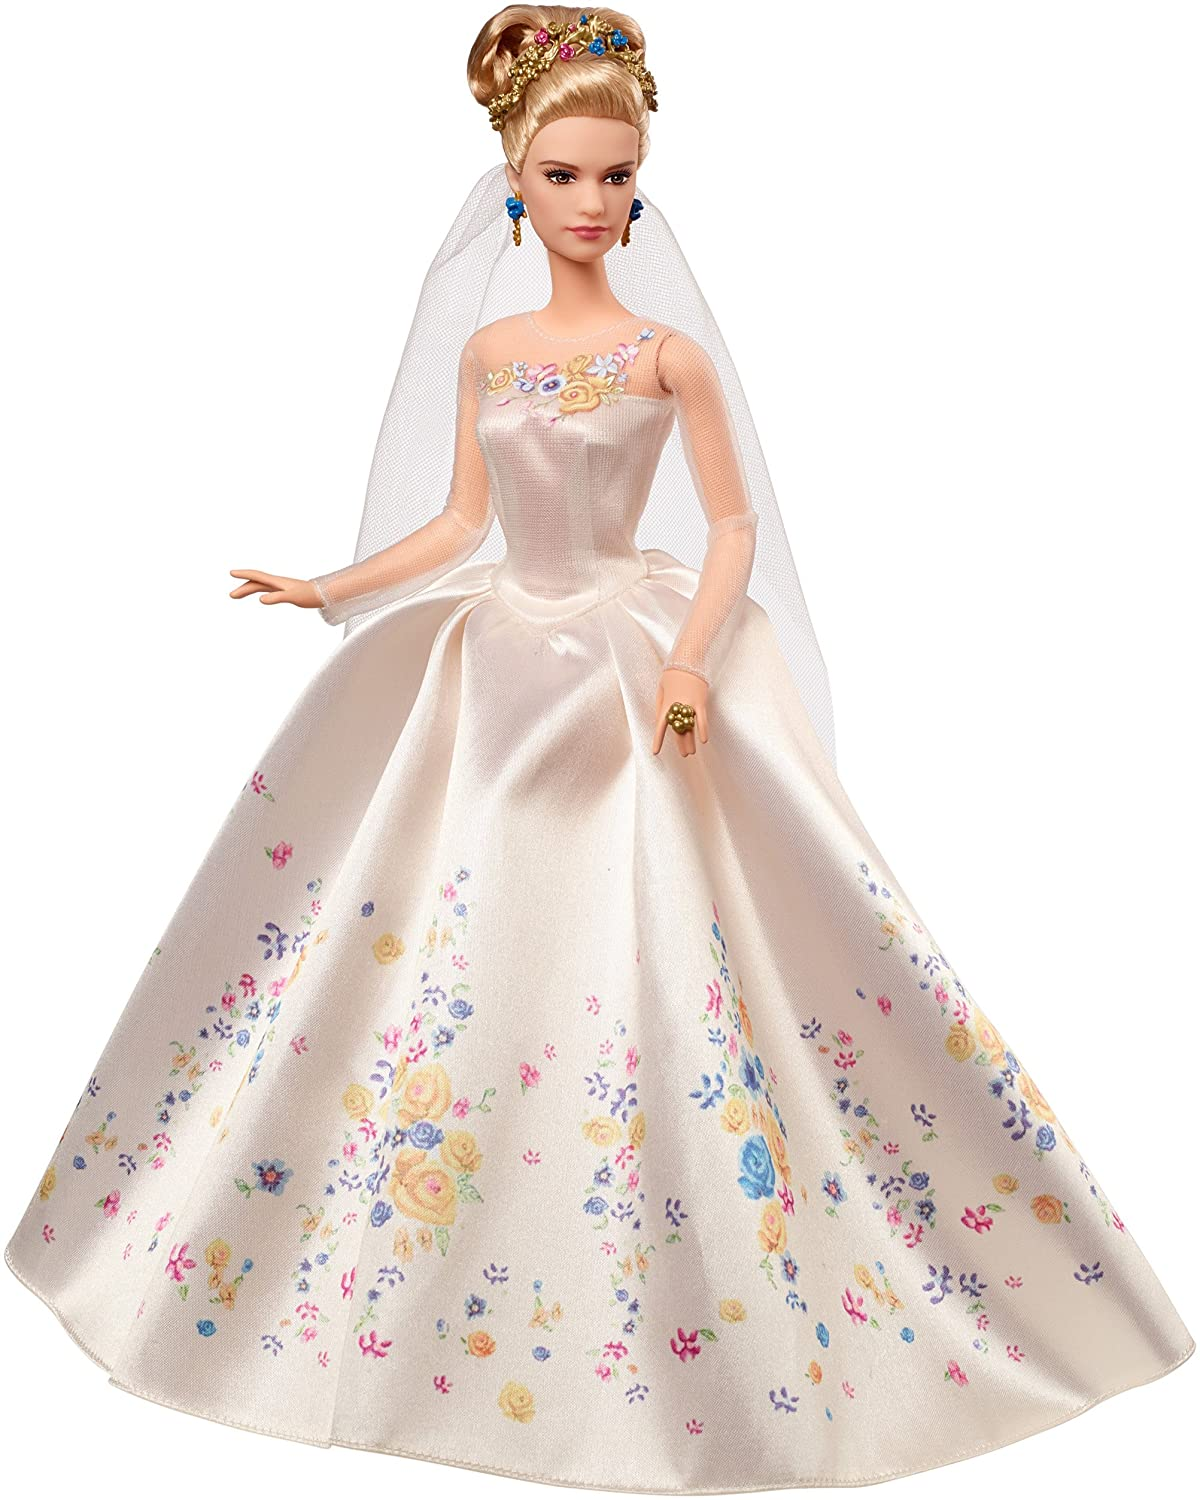 BGA cinderella wedding Amazon com Disney Wedding Day Cinderella Doll Discontinued by manufacturer Toys Games